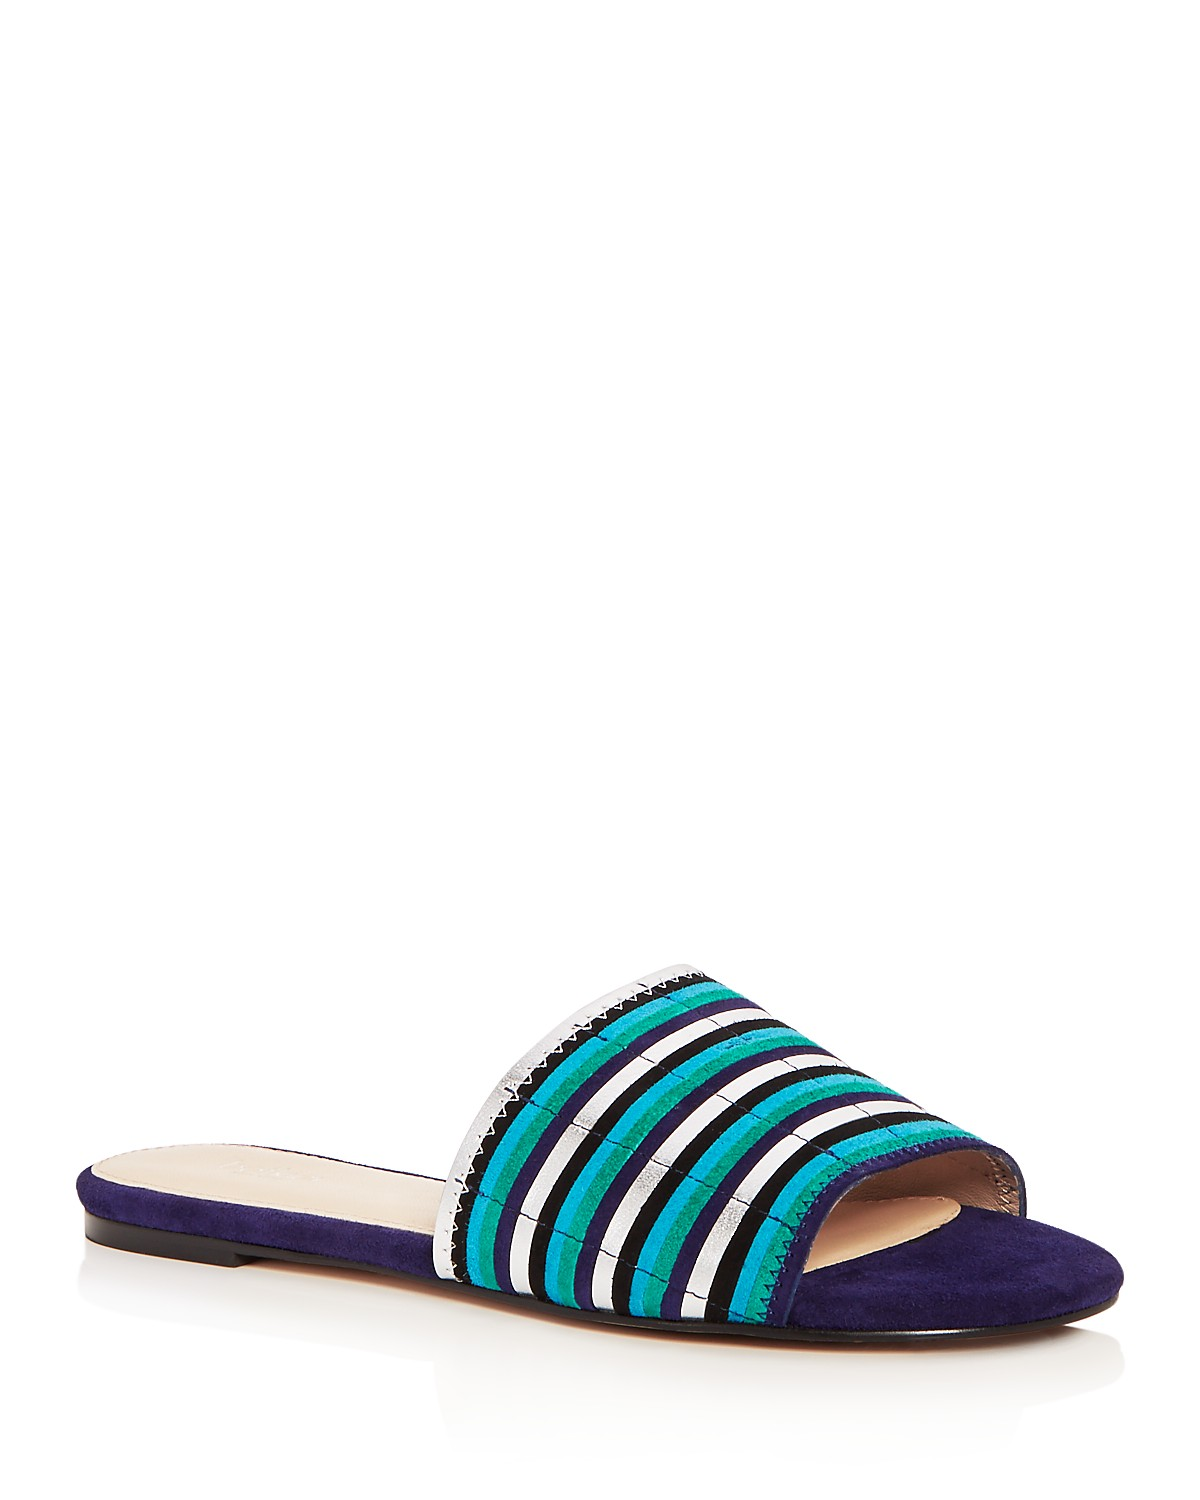 Buy Cheap New Styles Botkier Women's Marley Leather Stripe Slide Sandals High Quality Fake For Sale Exclusive Online eiSp9Zs